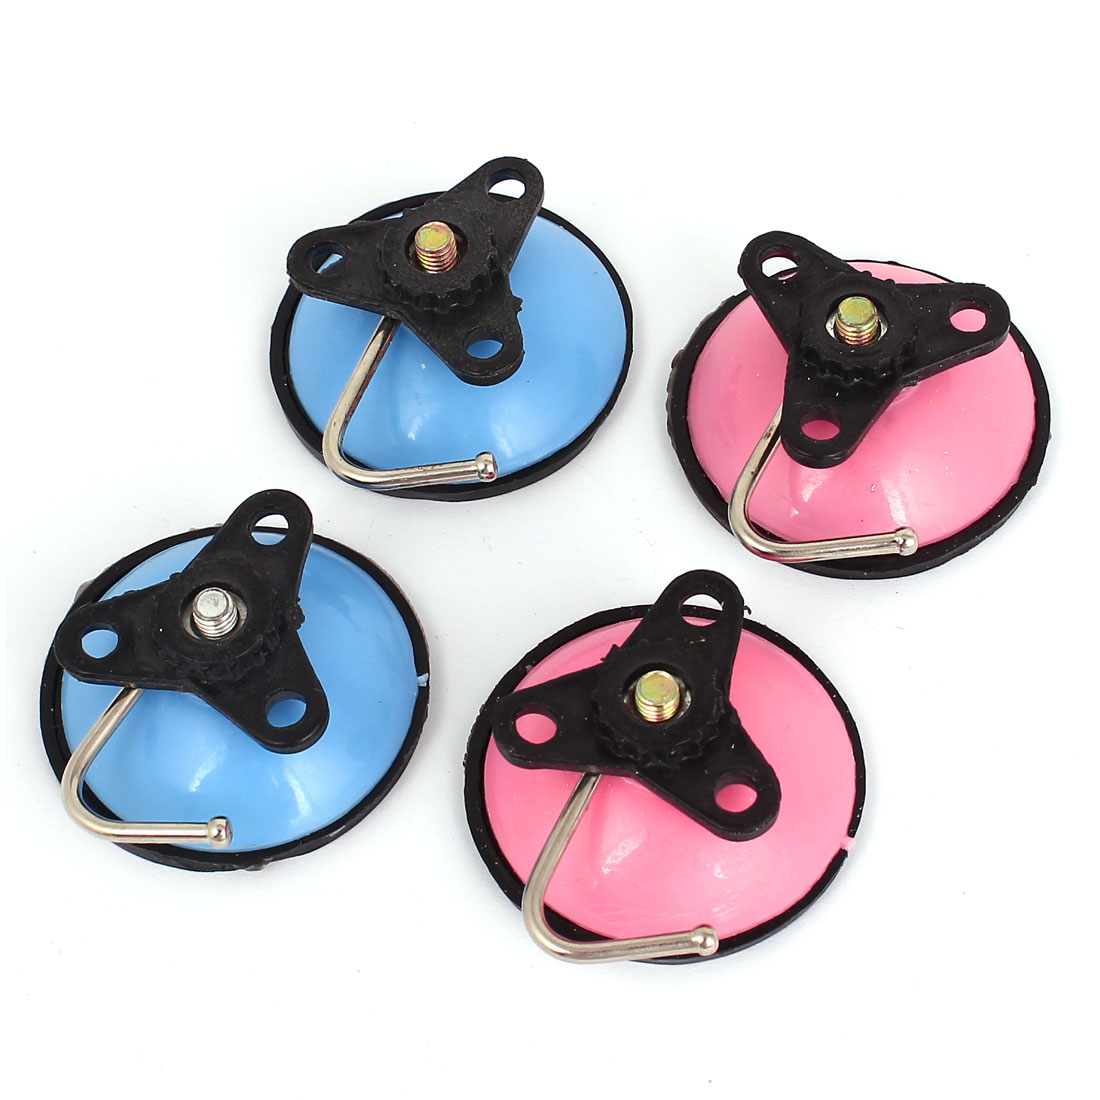 4pcs Kitchen Suction Cup Snap Hooks Bathroom Wall Hanger Blue Pink